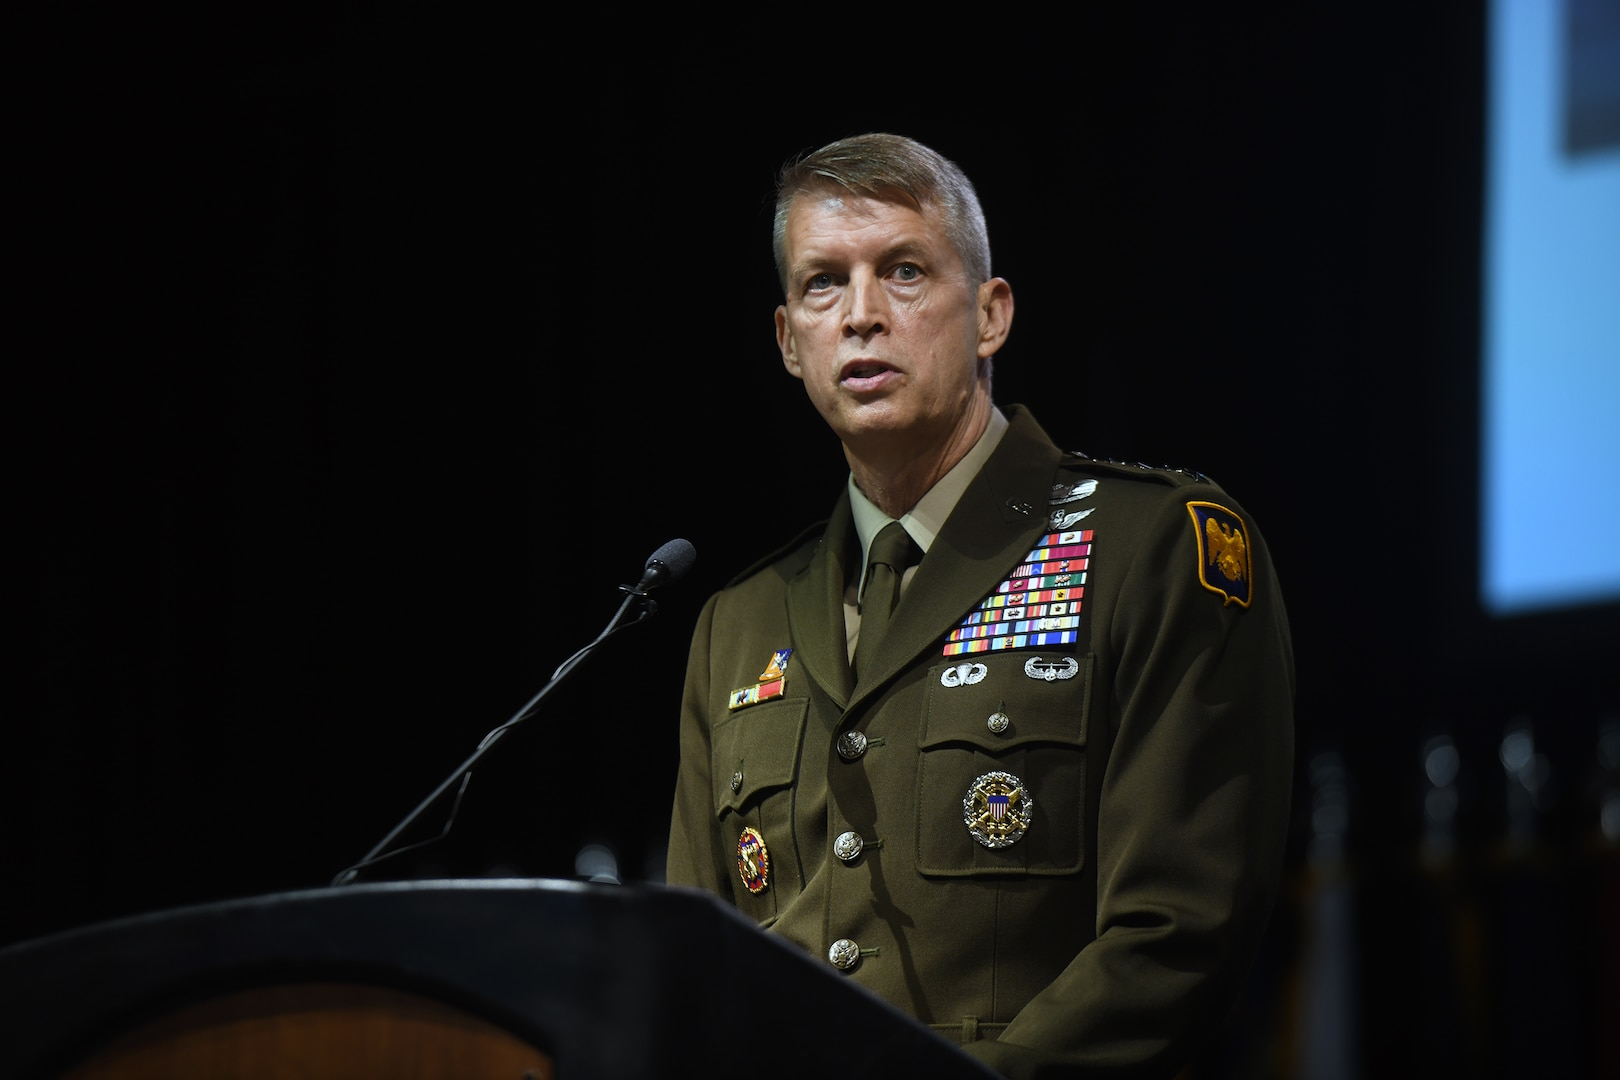 Army Gen. Daniel Hokanson, chief, National Guard Bureau, addresses the 50th annual conference of the Enlisted Association of the National Guard of the United States, Albuquerque, New Mexico, Aug. 8, 2021.